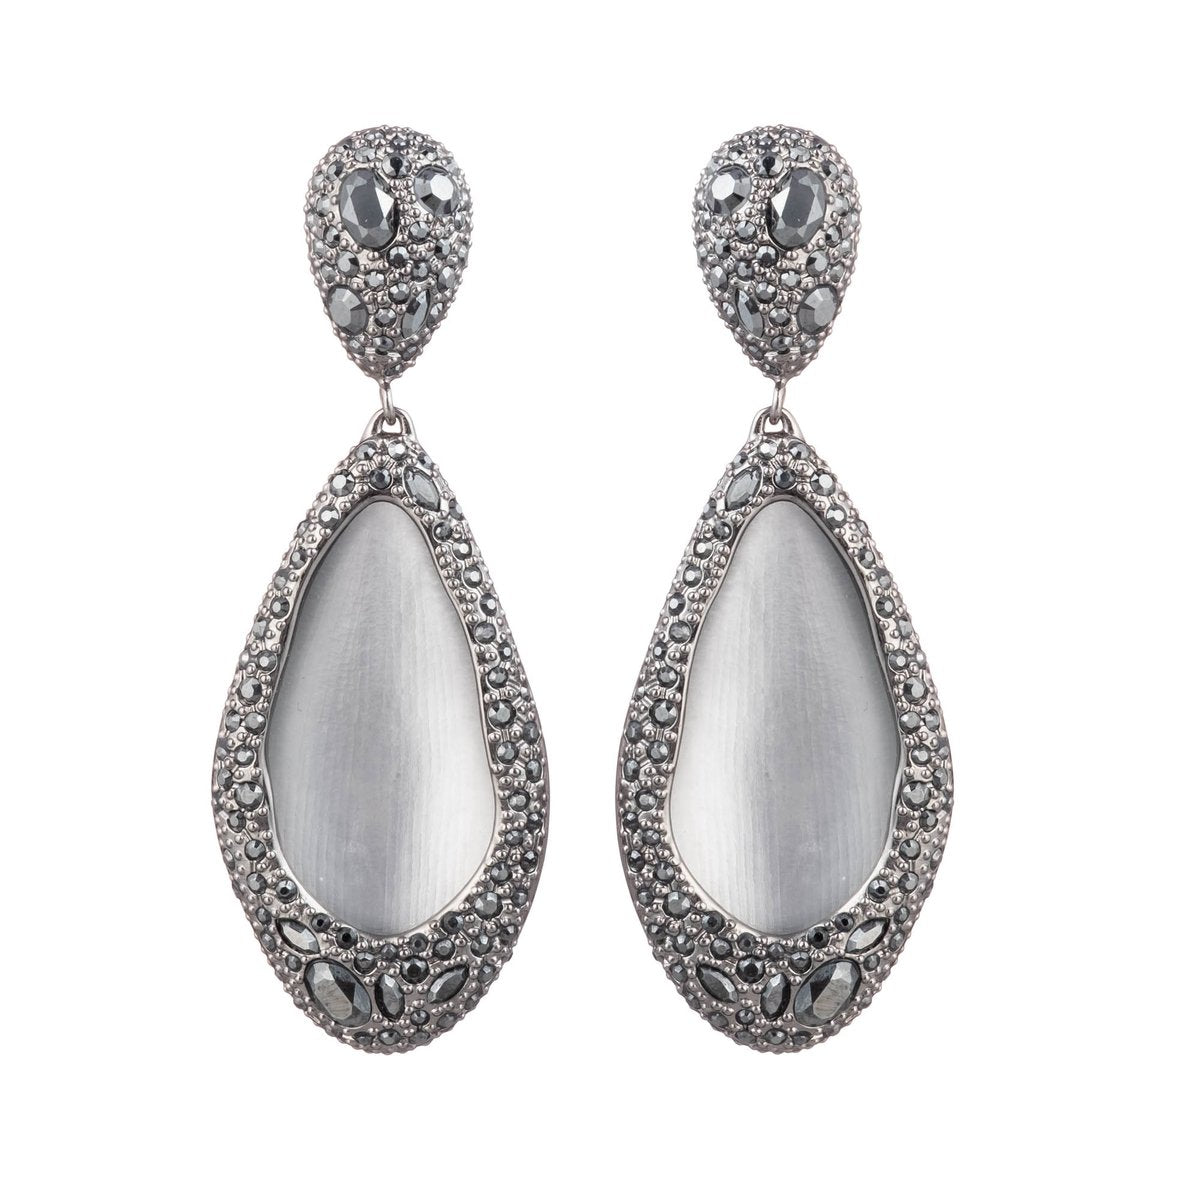 Crystal Encrusted Tear Drop Clip Earring